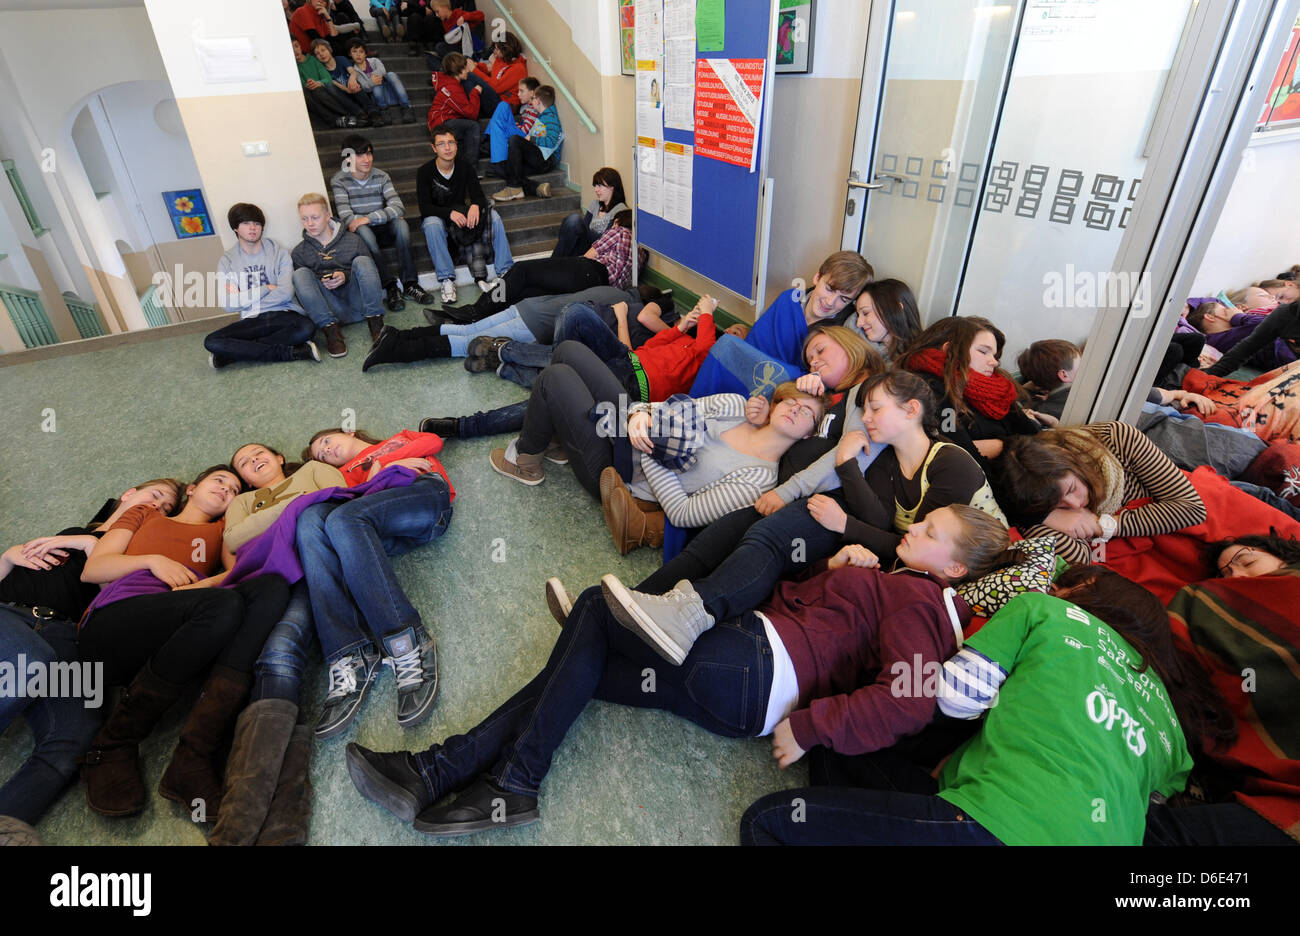 Over 600 pupils from the Dresden-Cotta School fall into symbolic deep sleep to protest against the school network - Stock Image